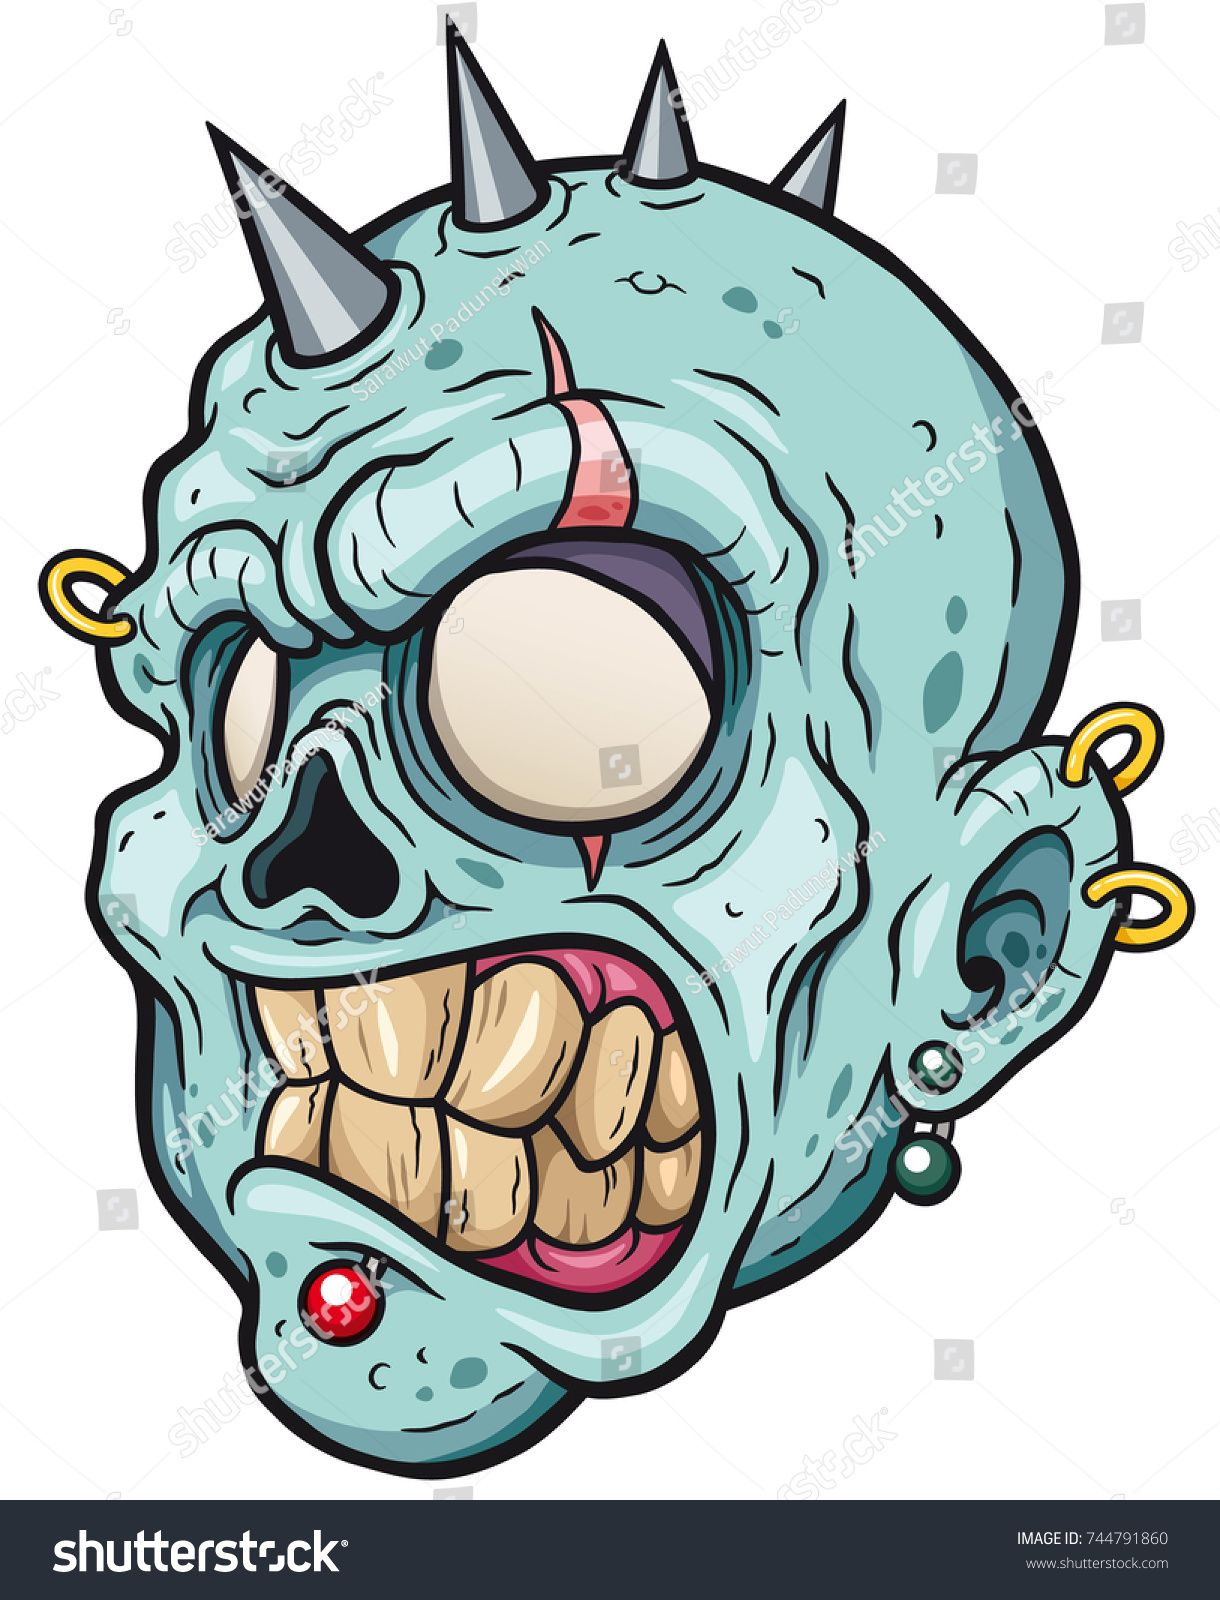 1220x1600 Vector Illustration Of Cartoon Zombie Head Cartoon Design In